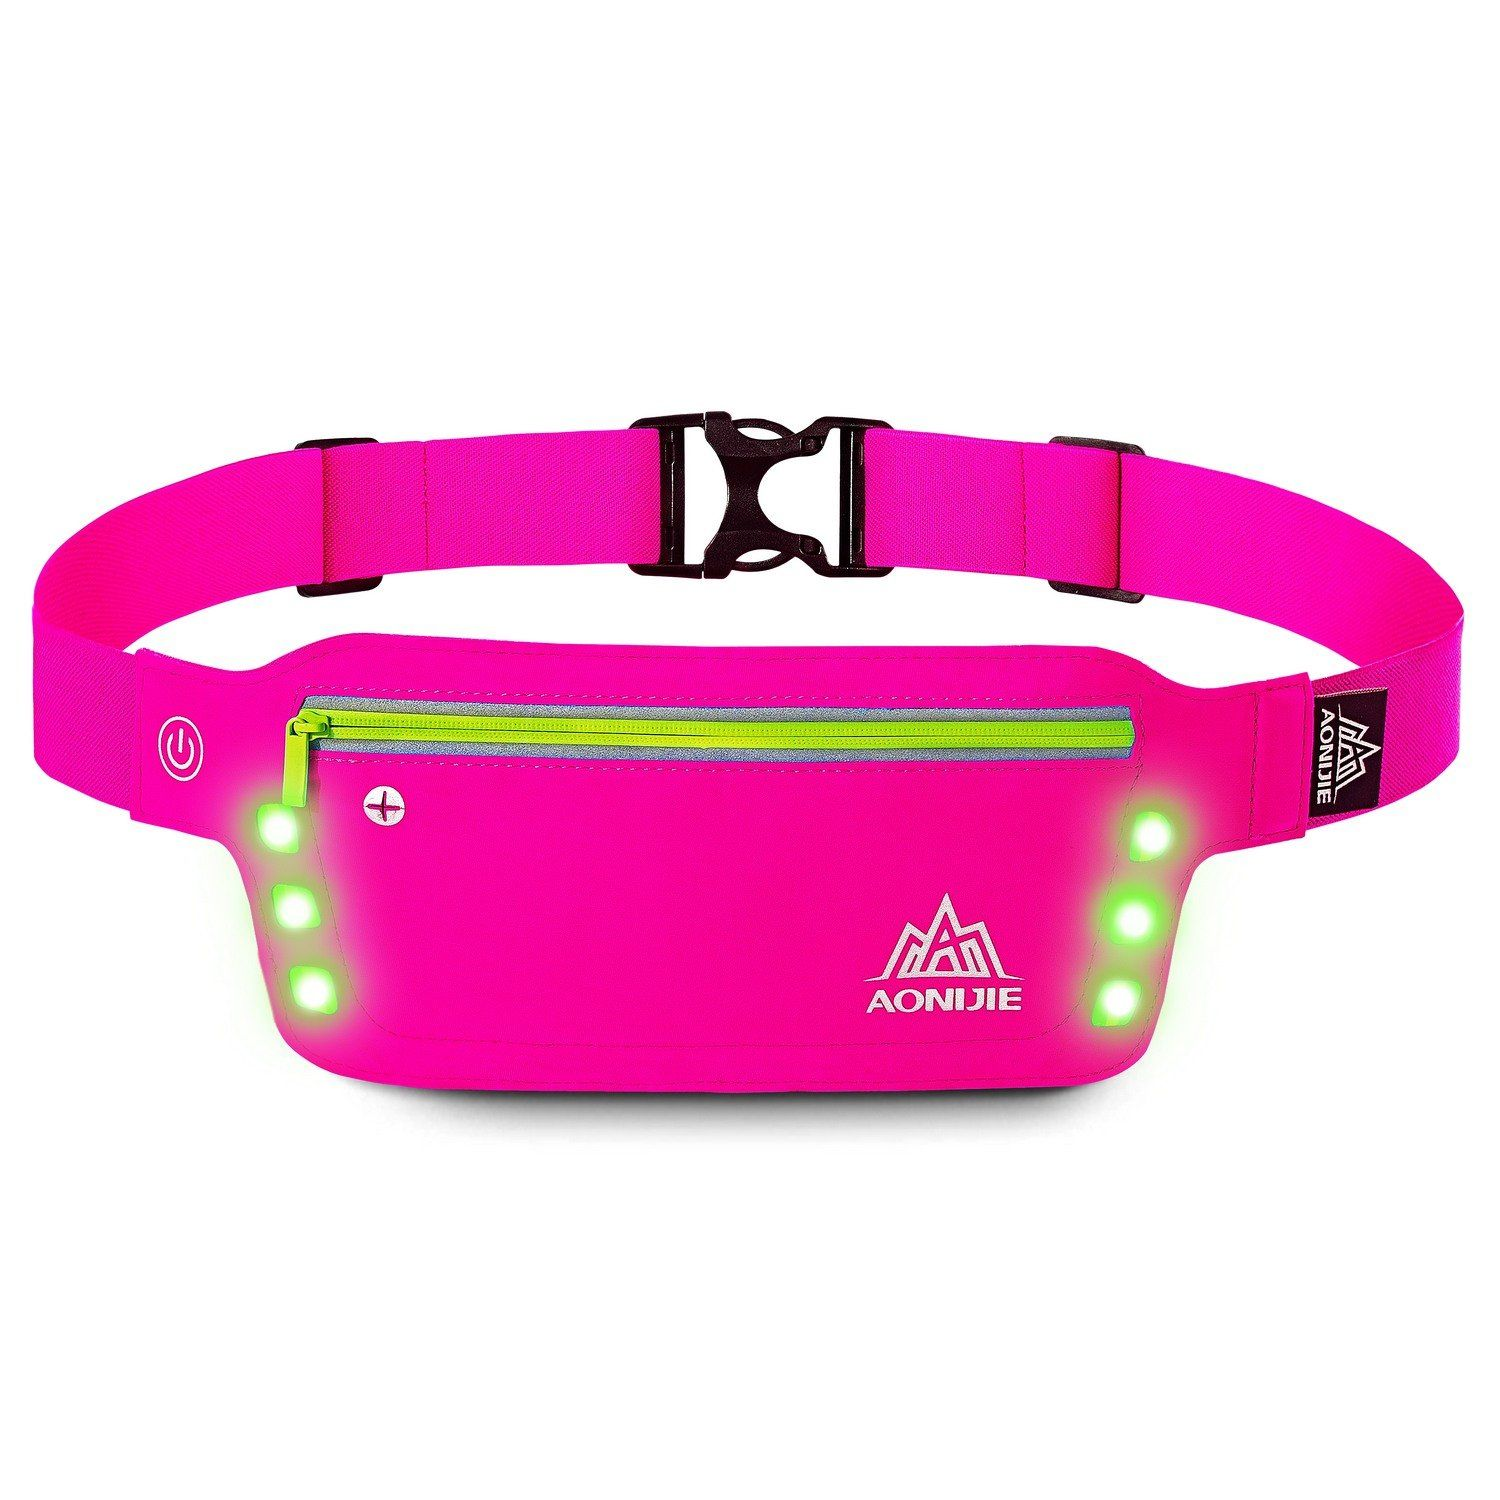 LERMX Waterproof Running & Fitness Belt With LED Safety